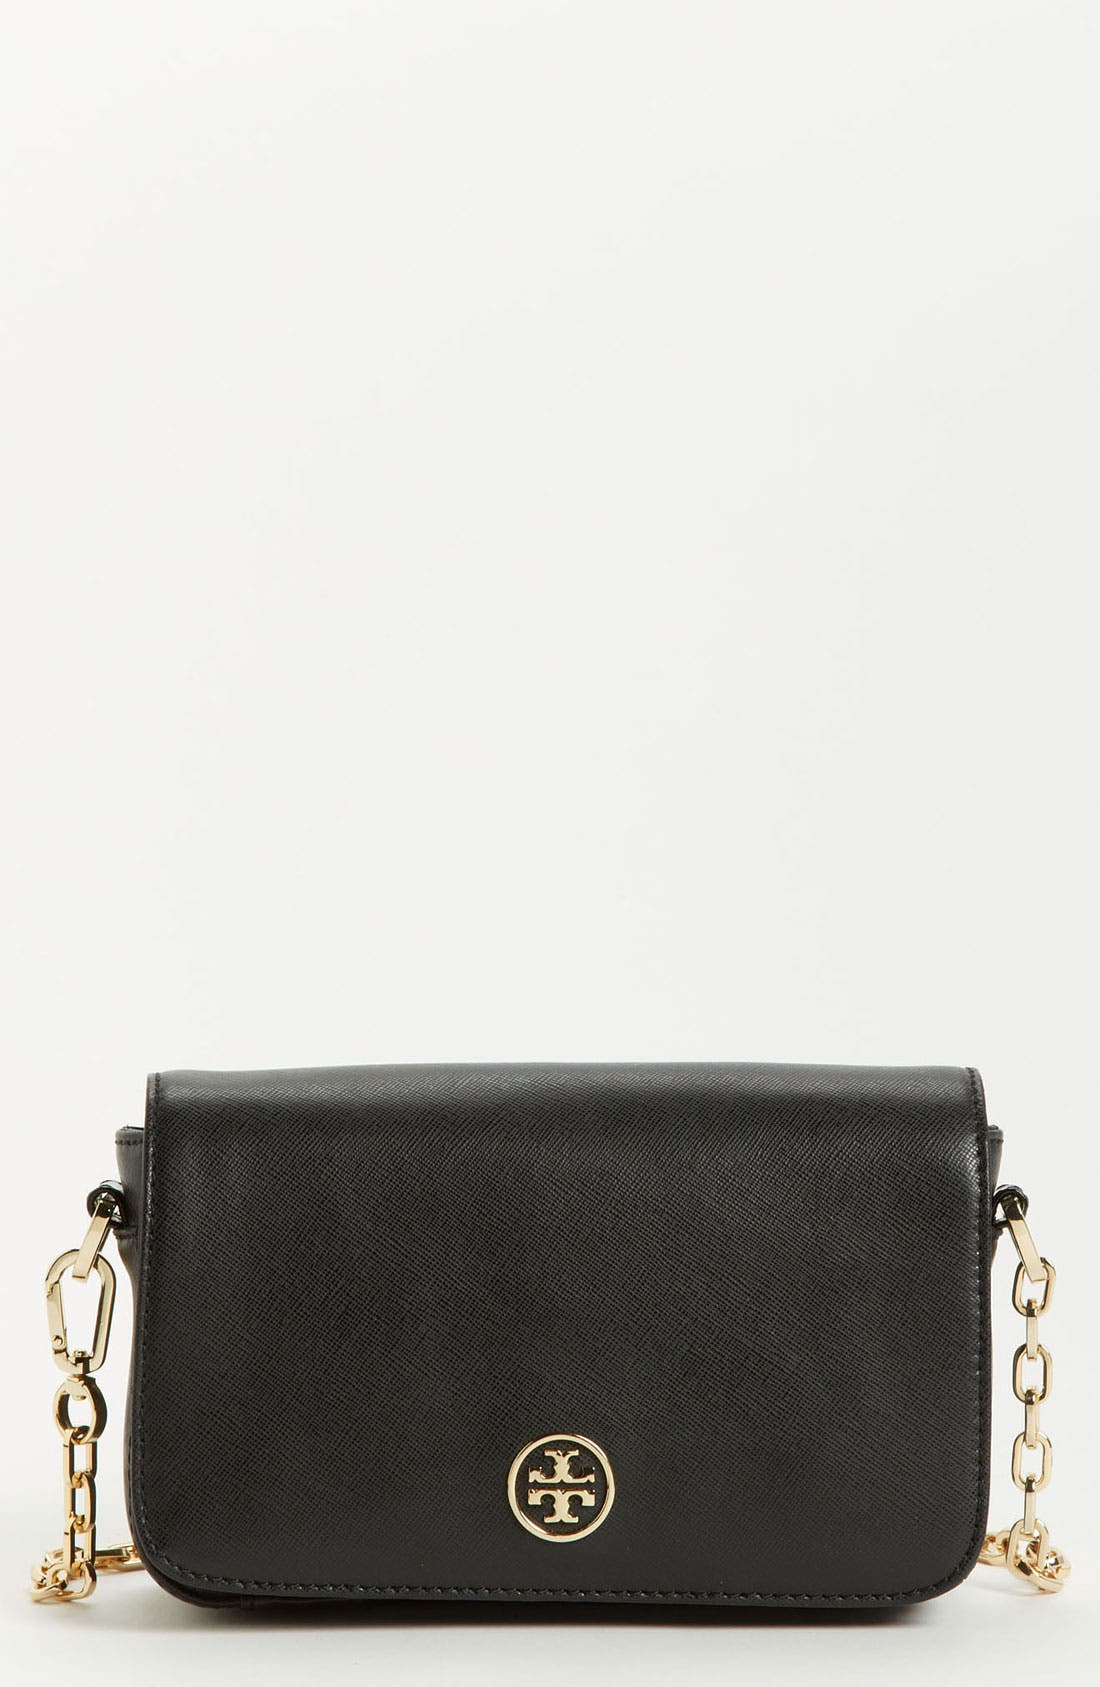 'Robinson - Mini' Saffiano Leather Crossbody Bag,                         Main,                         color, 001